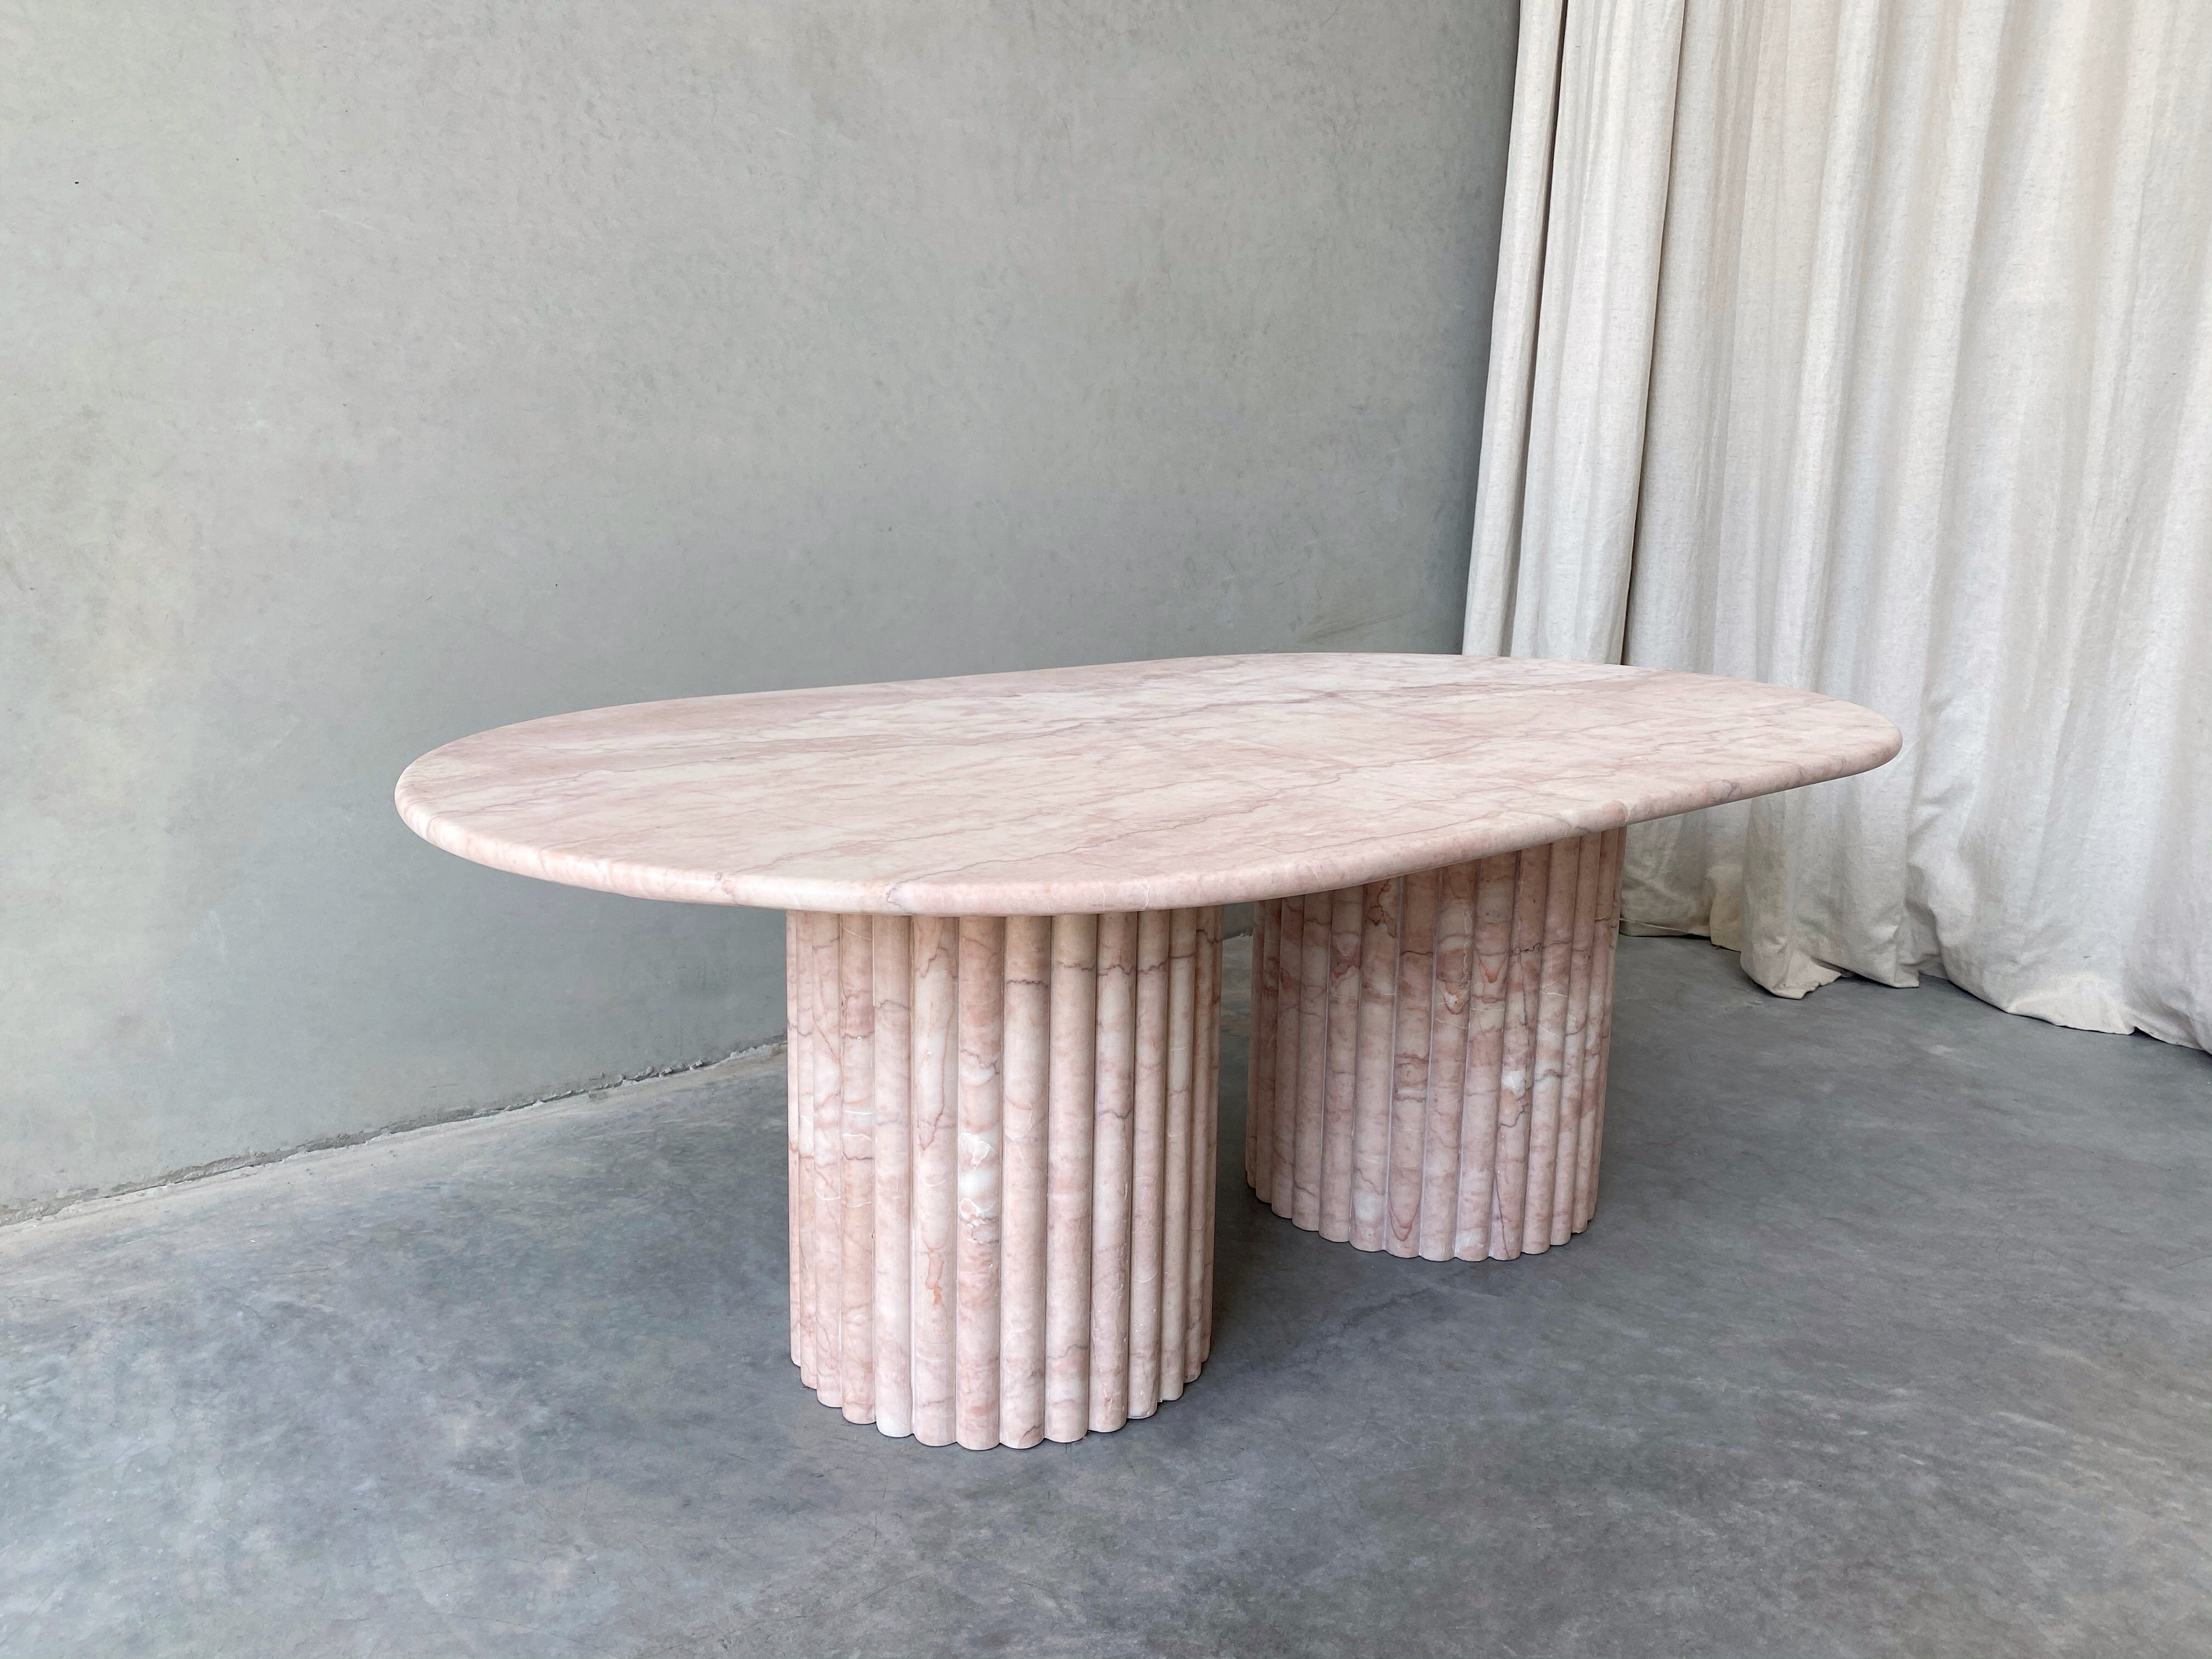 Rosetta Coffee Table, Rosa Vene. The rounded edges and curved oval shape married with the soft textures and pattern of veins throughout brings dimension and an elevated element of curated detail. Paired with fluted, scalloped cylindrical legs that are moveable so placement can be adjusted anyway desired.